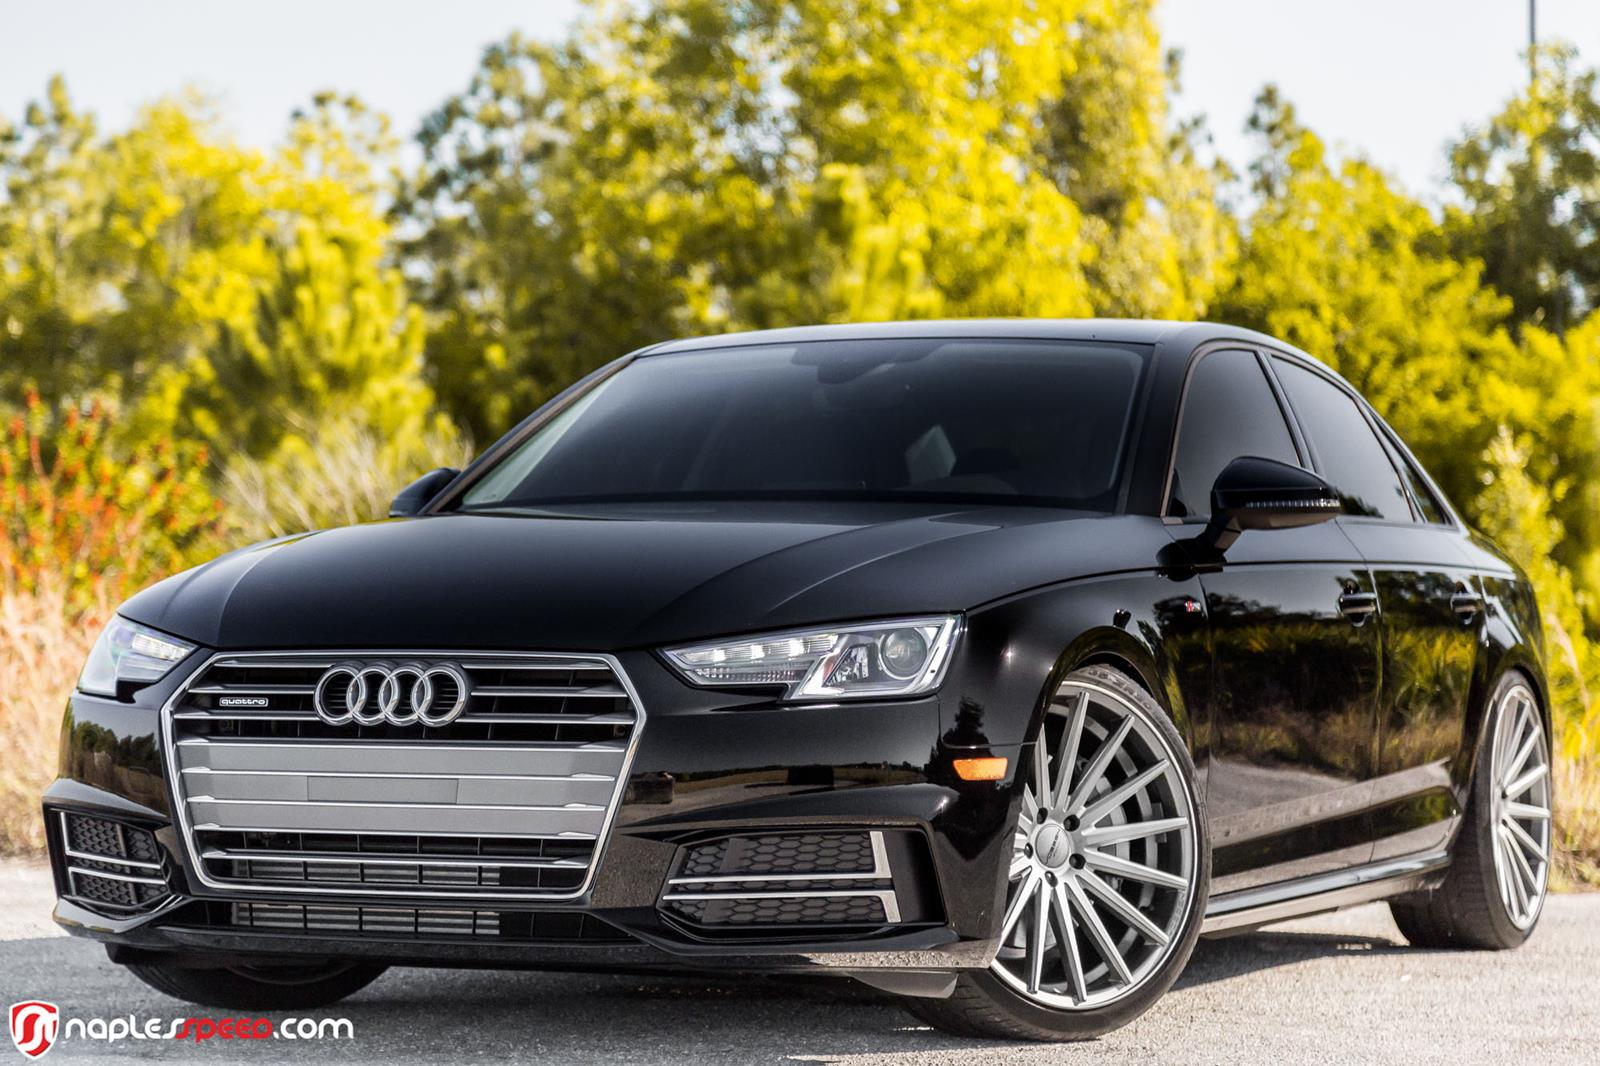 2017 audi a4 rides on vossen wheels looks extremely hot carz tuning. Black Bedroom Furniture Sets. Home Design Ideas